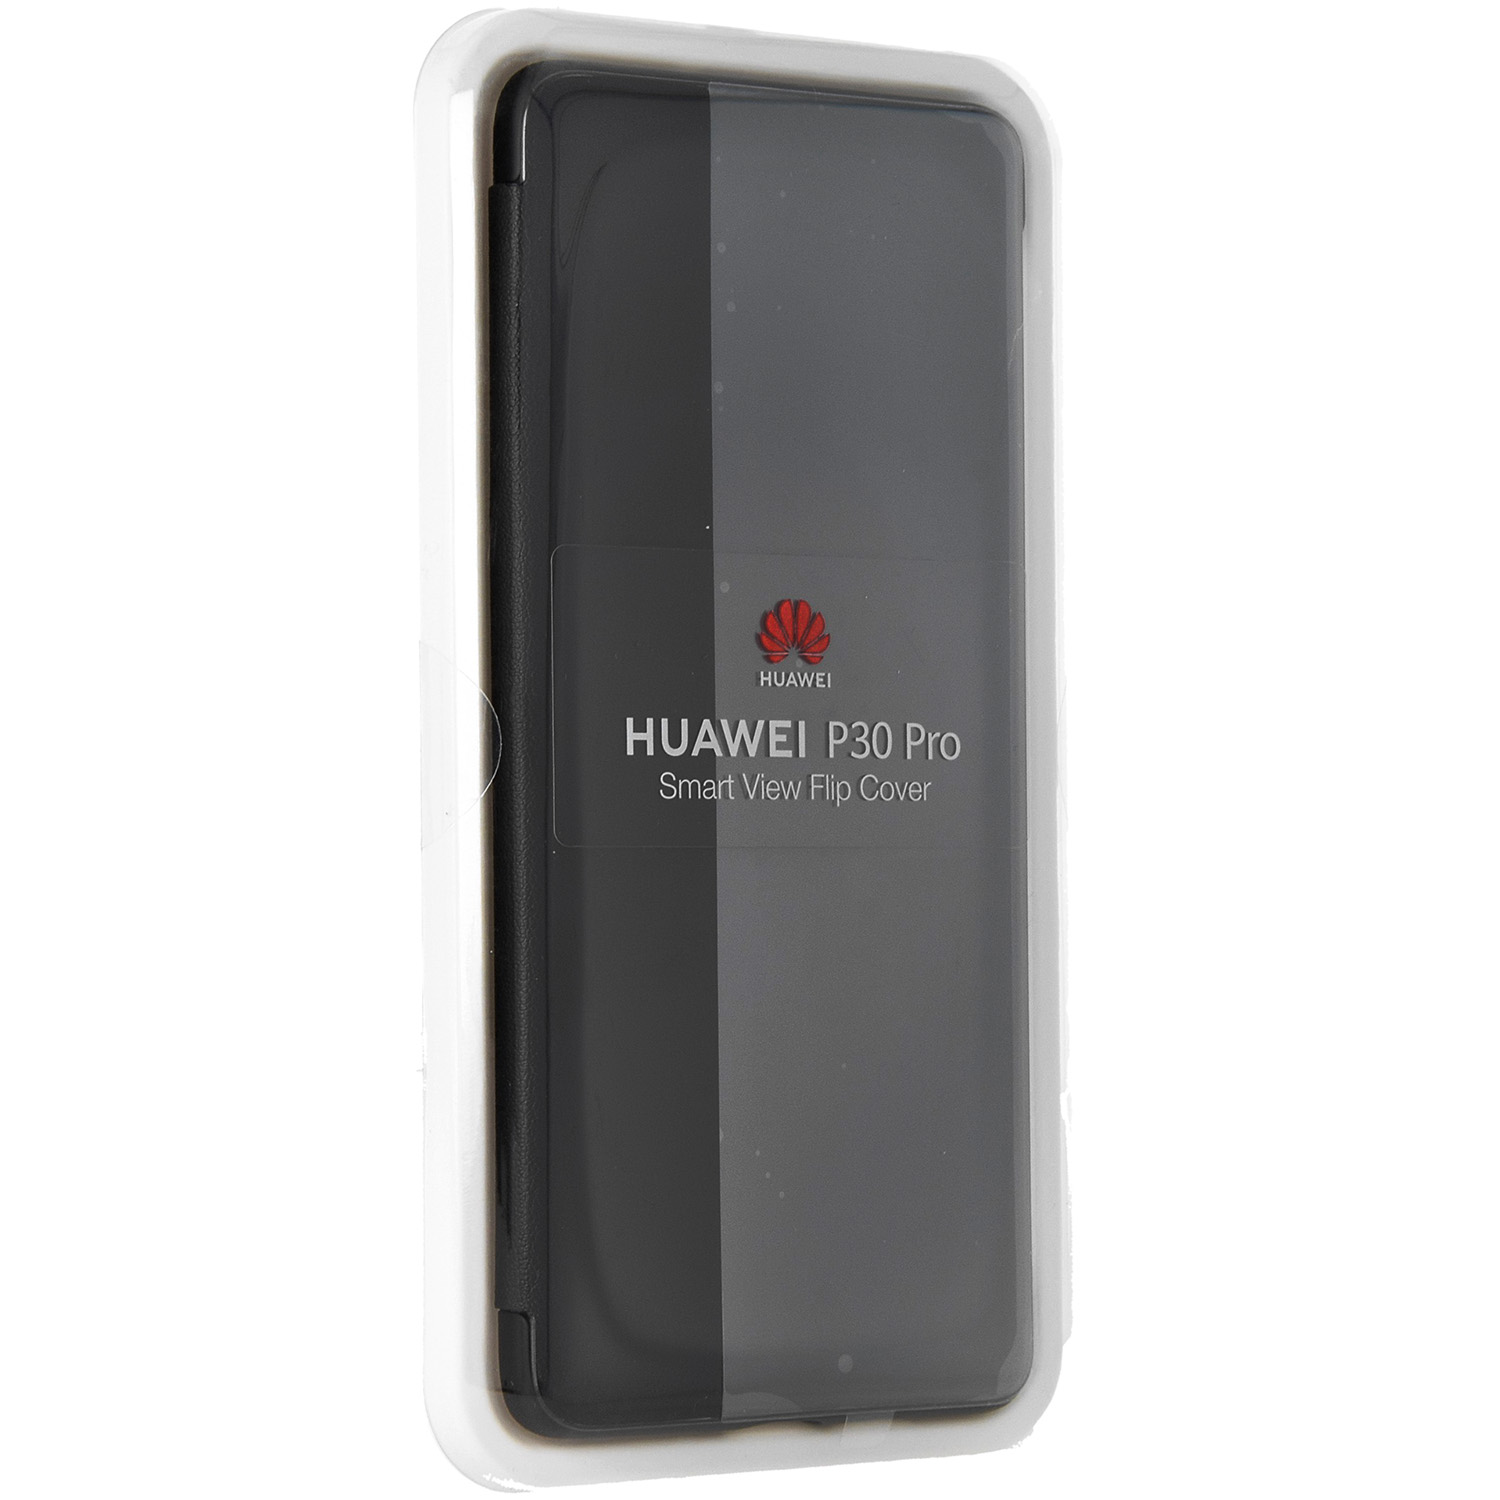 Etui Smart View Flip Cover do Huawei P30 Pro.